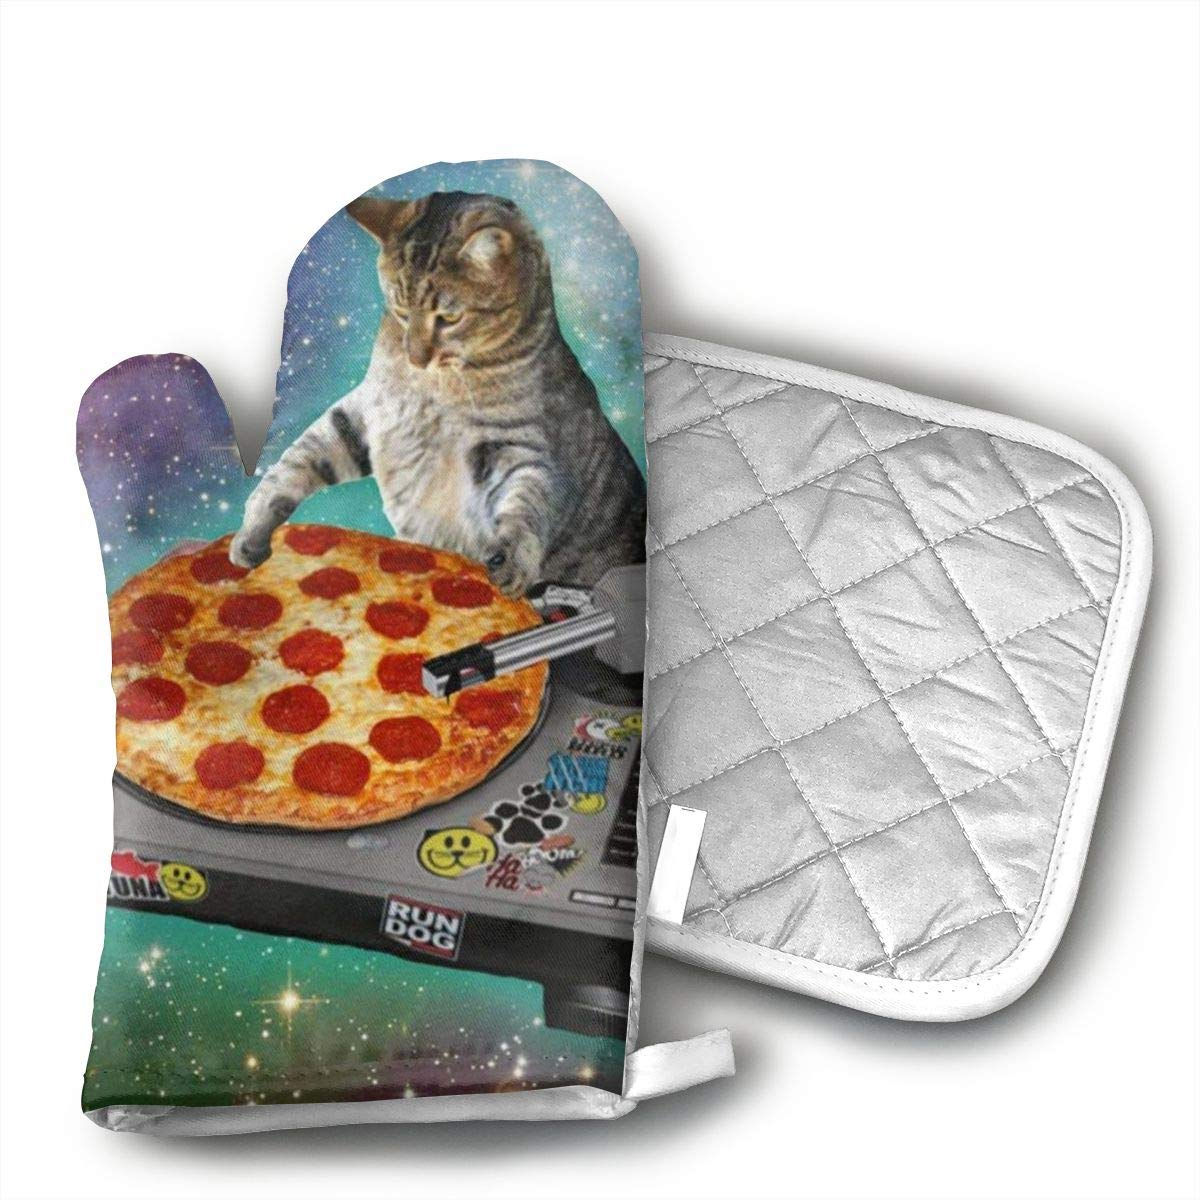 Wiqo9 Space Cat Pizza Oven Mitts and Pot Holders Kitchen Mitten Cooking Gloves,Cooking, Baking, BBQ.